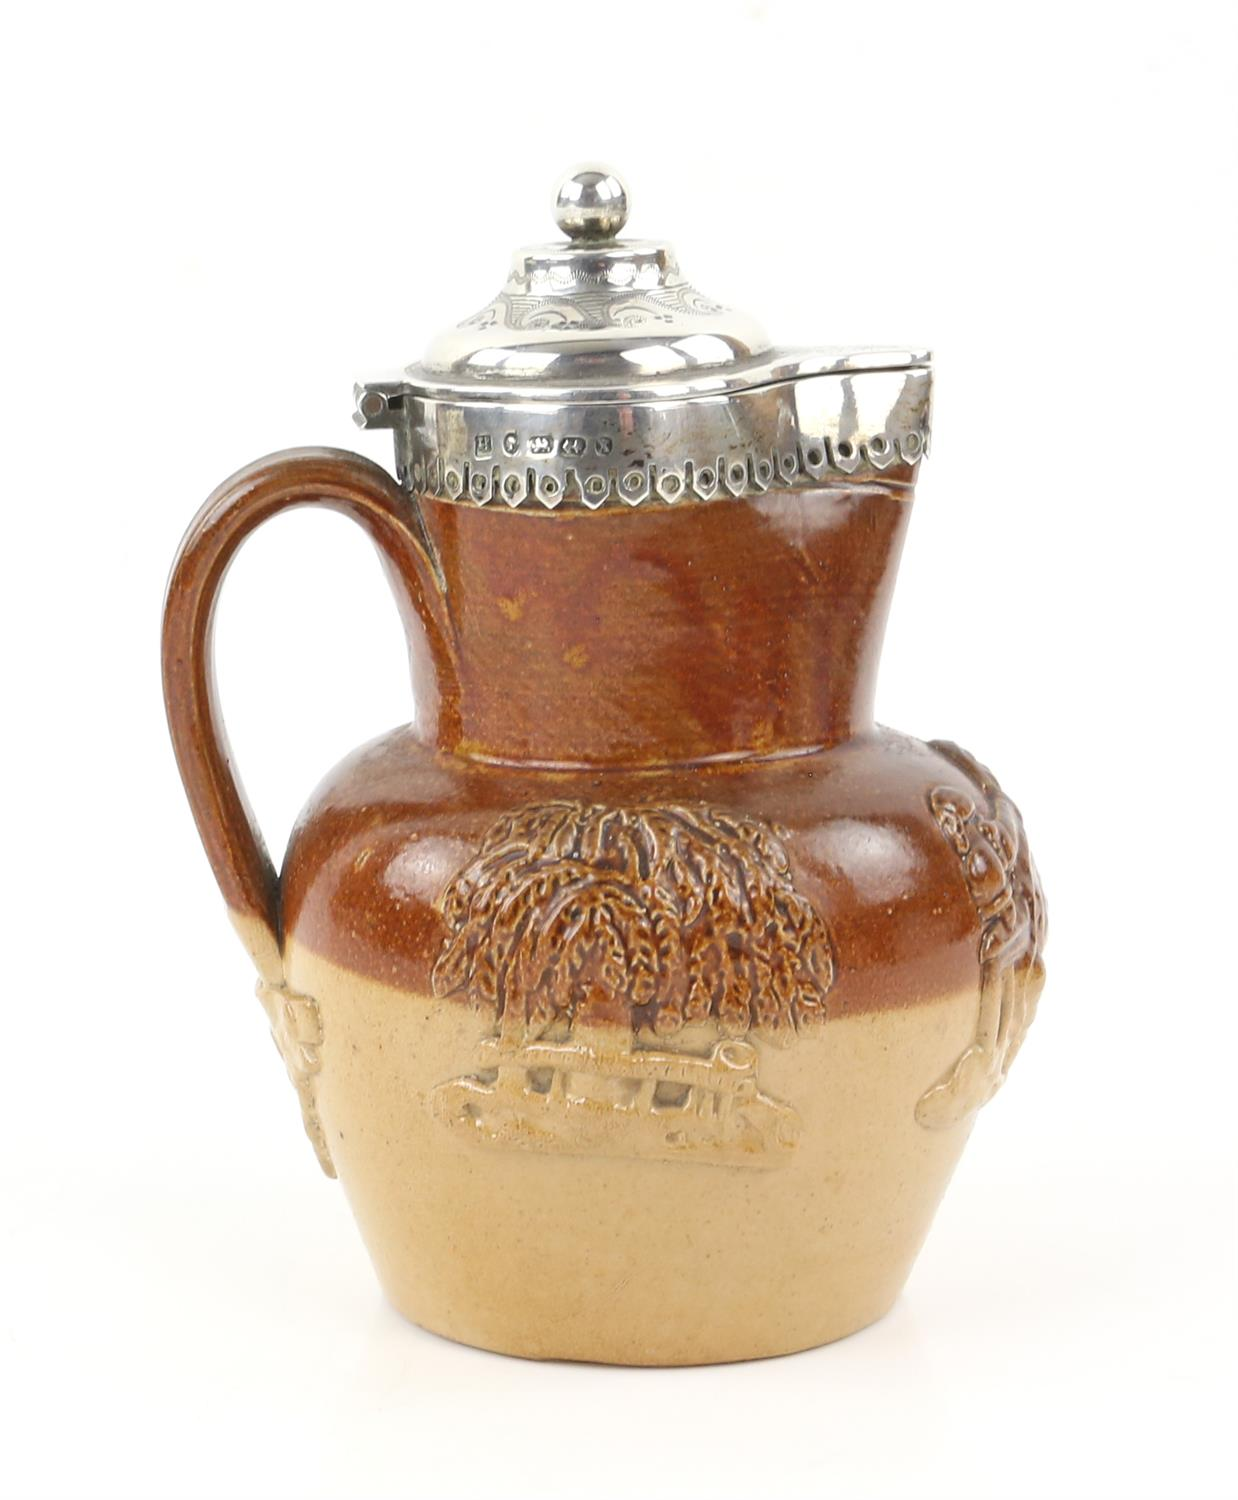 Silver mounted Victorian harvest jug by Thomas Prime and Son, Birmingham 1872 - Image 3 of 6